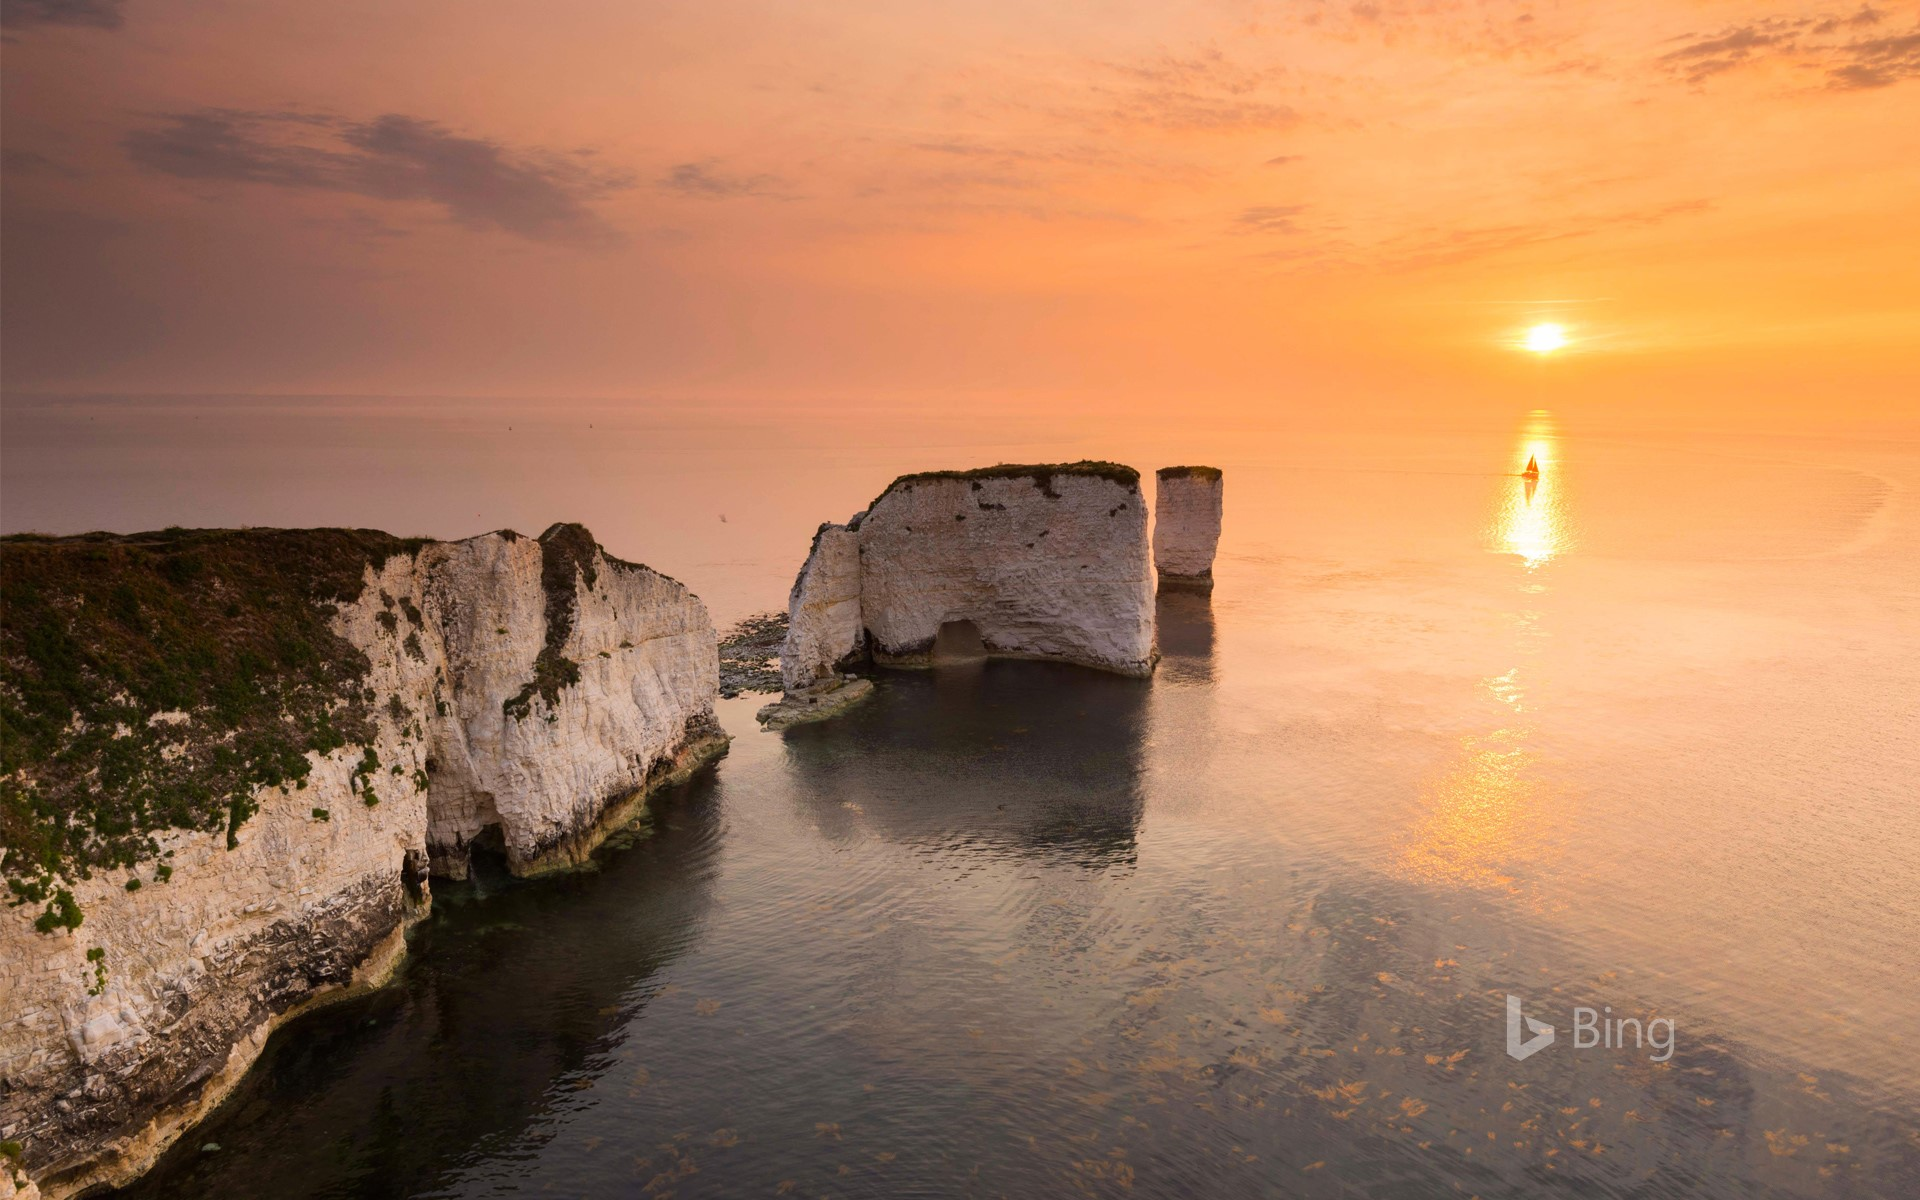 Sunrise at the chalk pinnacles of Old Harry Rocks, near Studland, Dorset